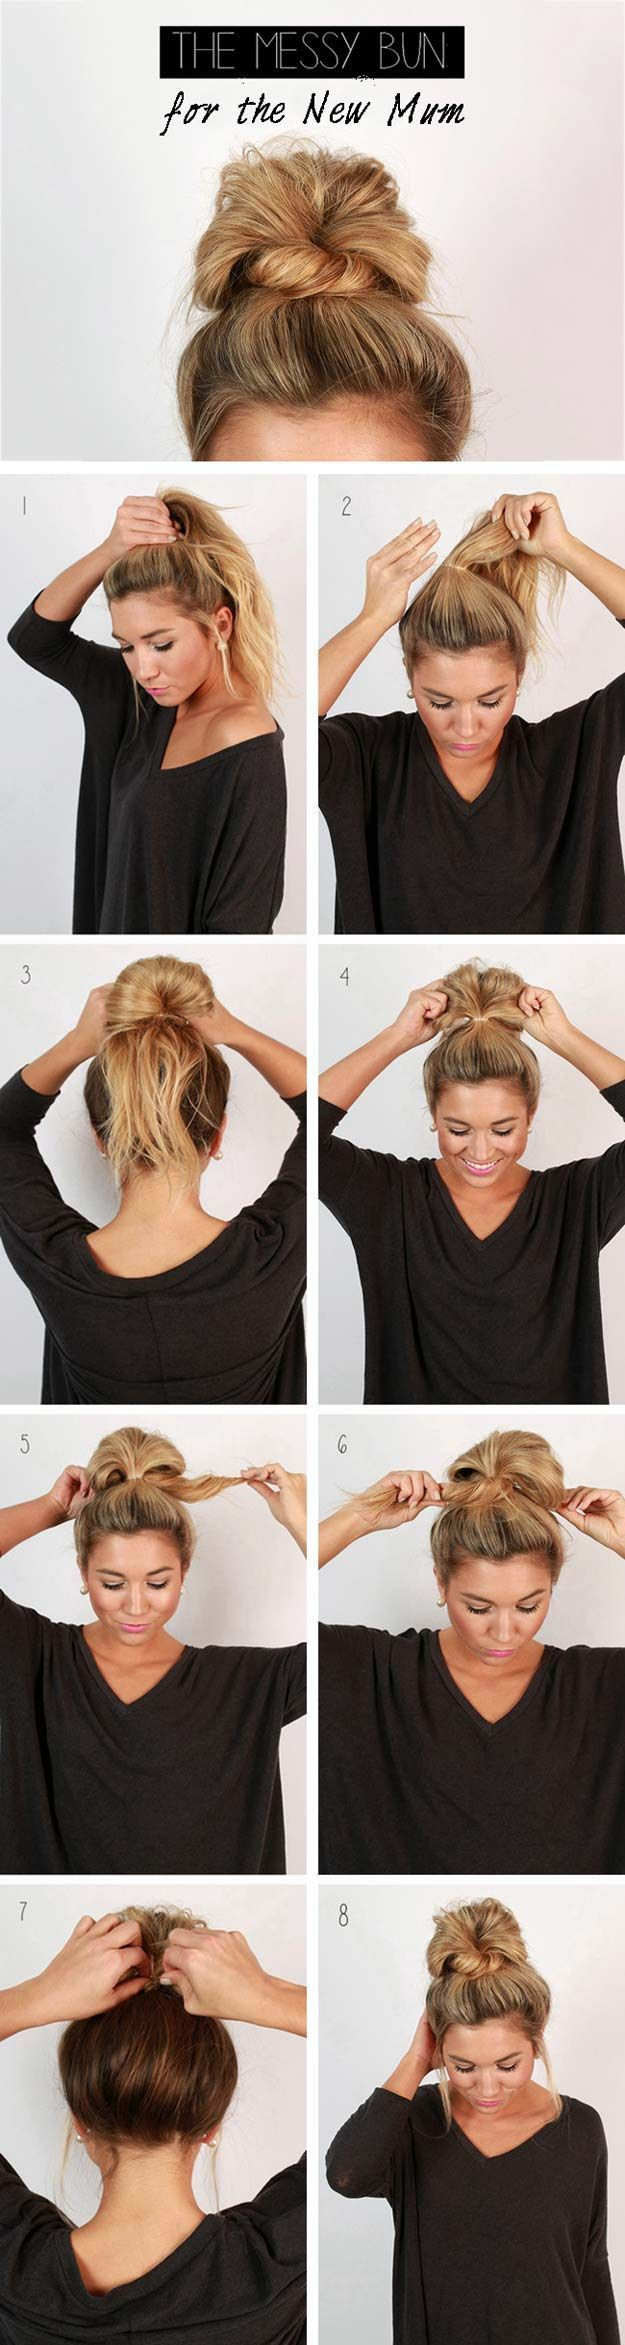 Great and Simple Diy Hairstyles - Messy Bun - Rapid and Simple Thoughts for Back again to School Variations for Medium, Short and Prolonged Hair - Enjoyable Ideas and Greatest Phase by Phase Tutorials for Teens, Promenade, Weddings, Unique Events and Do the job. Up dos, Braids, Top Knots and Buns,... - Hifow - Unionbeatz - http://howto.hifow.com/great-and-simple-diy-hairstyles-messy-bun-rapid-and-simple-thoughts-for-back-again-to-school-variations-for-medium-short-and-prolong